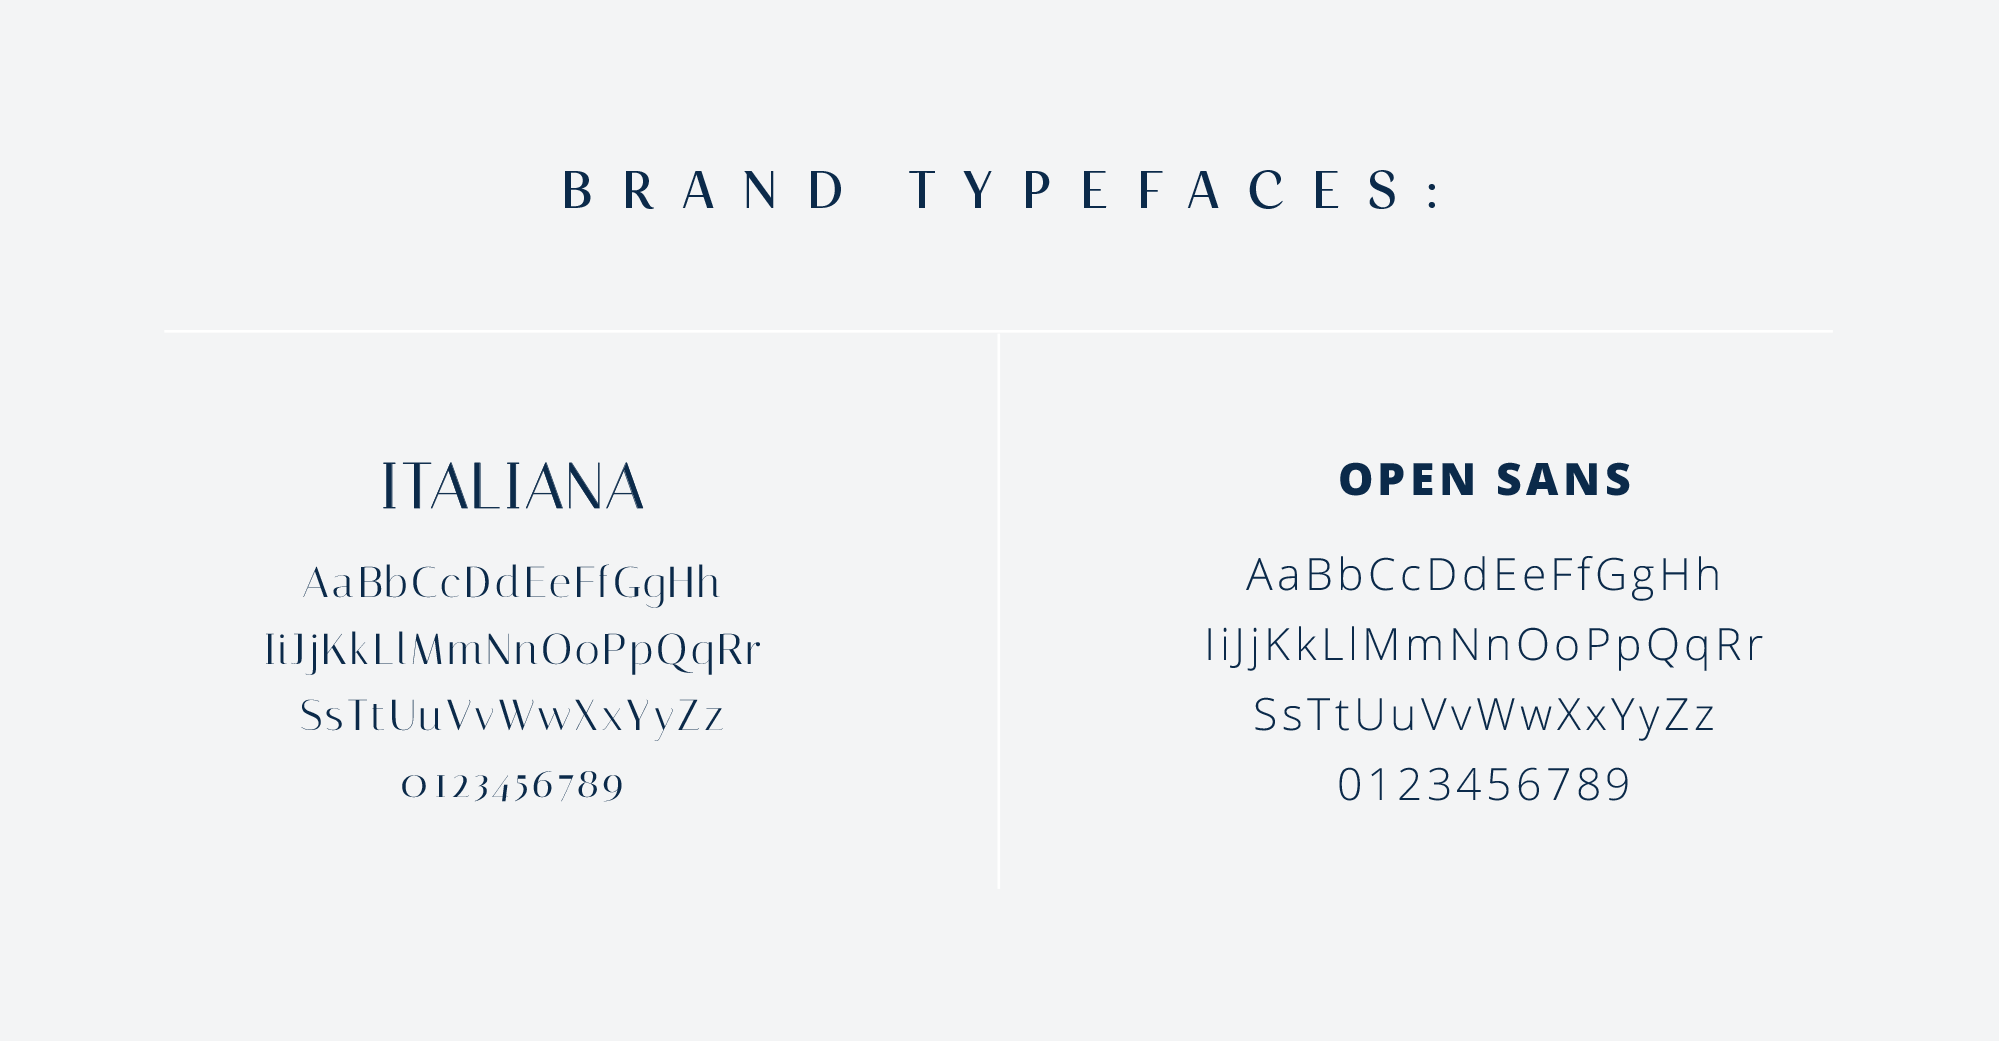 bortz-law-brand-fonts